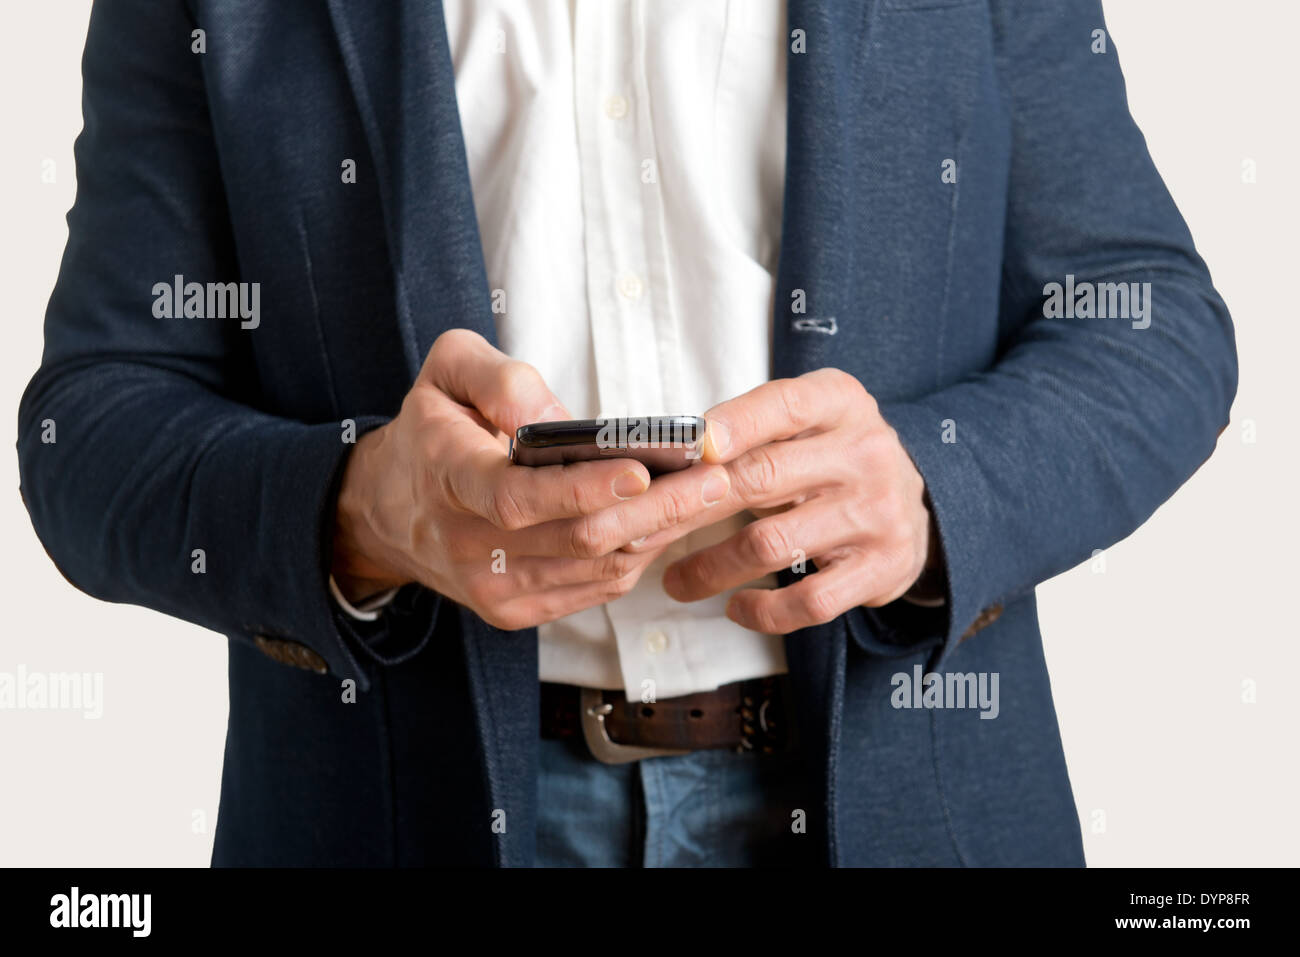 Casual businessman sending a text message on a mobile phone - Stock Image